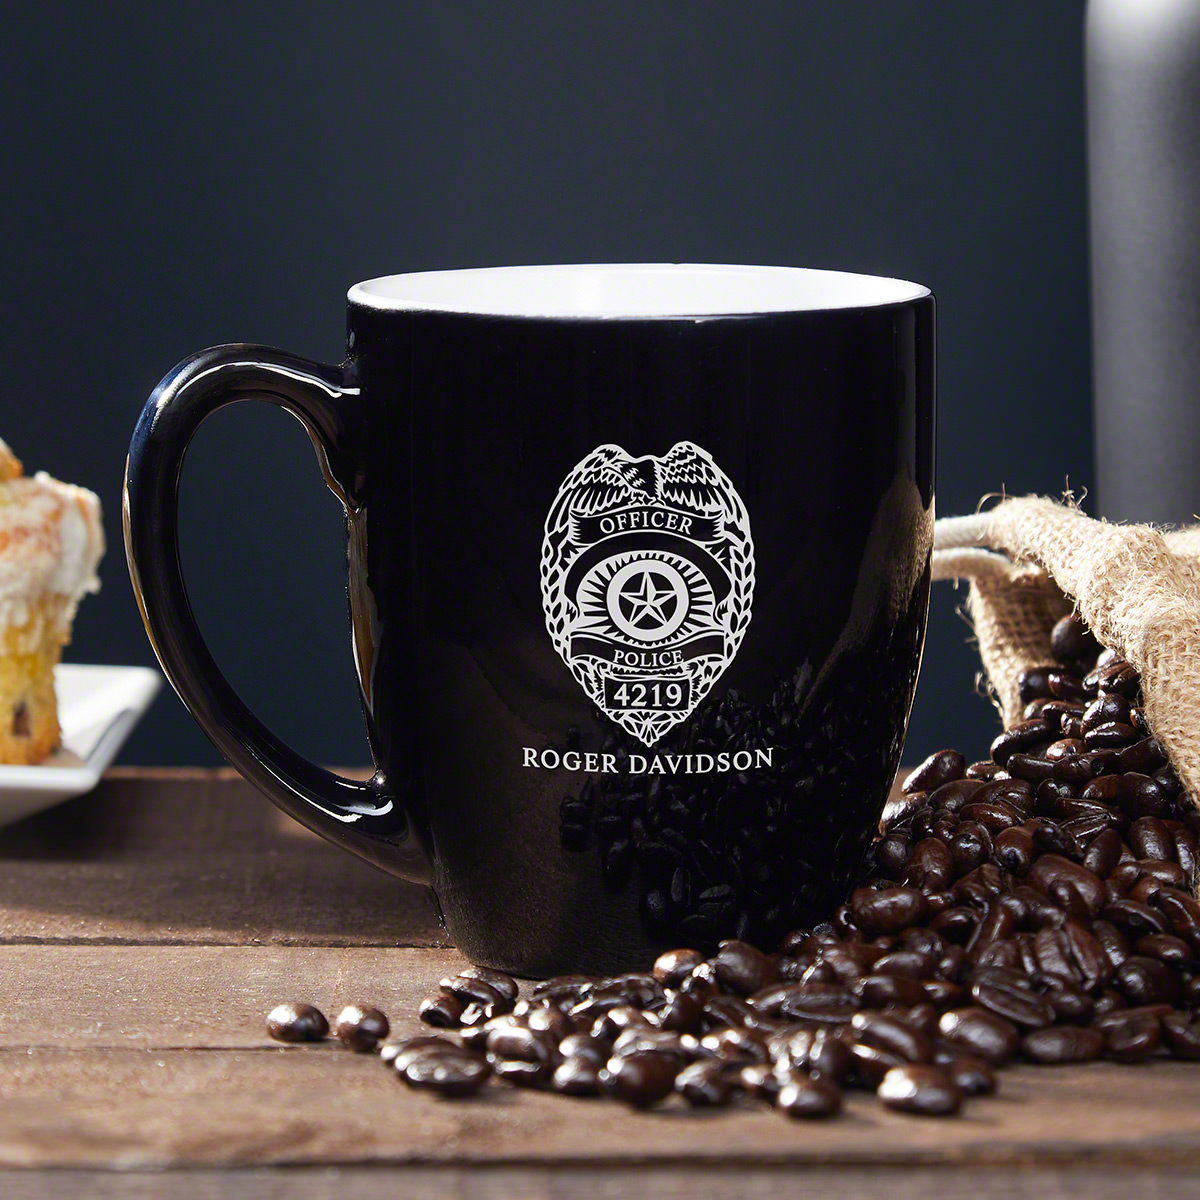 Few professions need to be as alert at all times like those in law enforcement. Our personalized coffee mug is a great gift for police officers so they can be sure to never miss a thing. Whether they prefer a cup of tea or their coffee black, this mug wil #mug